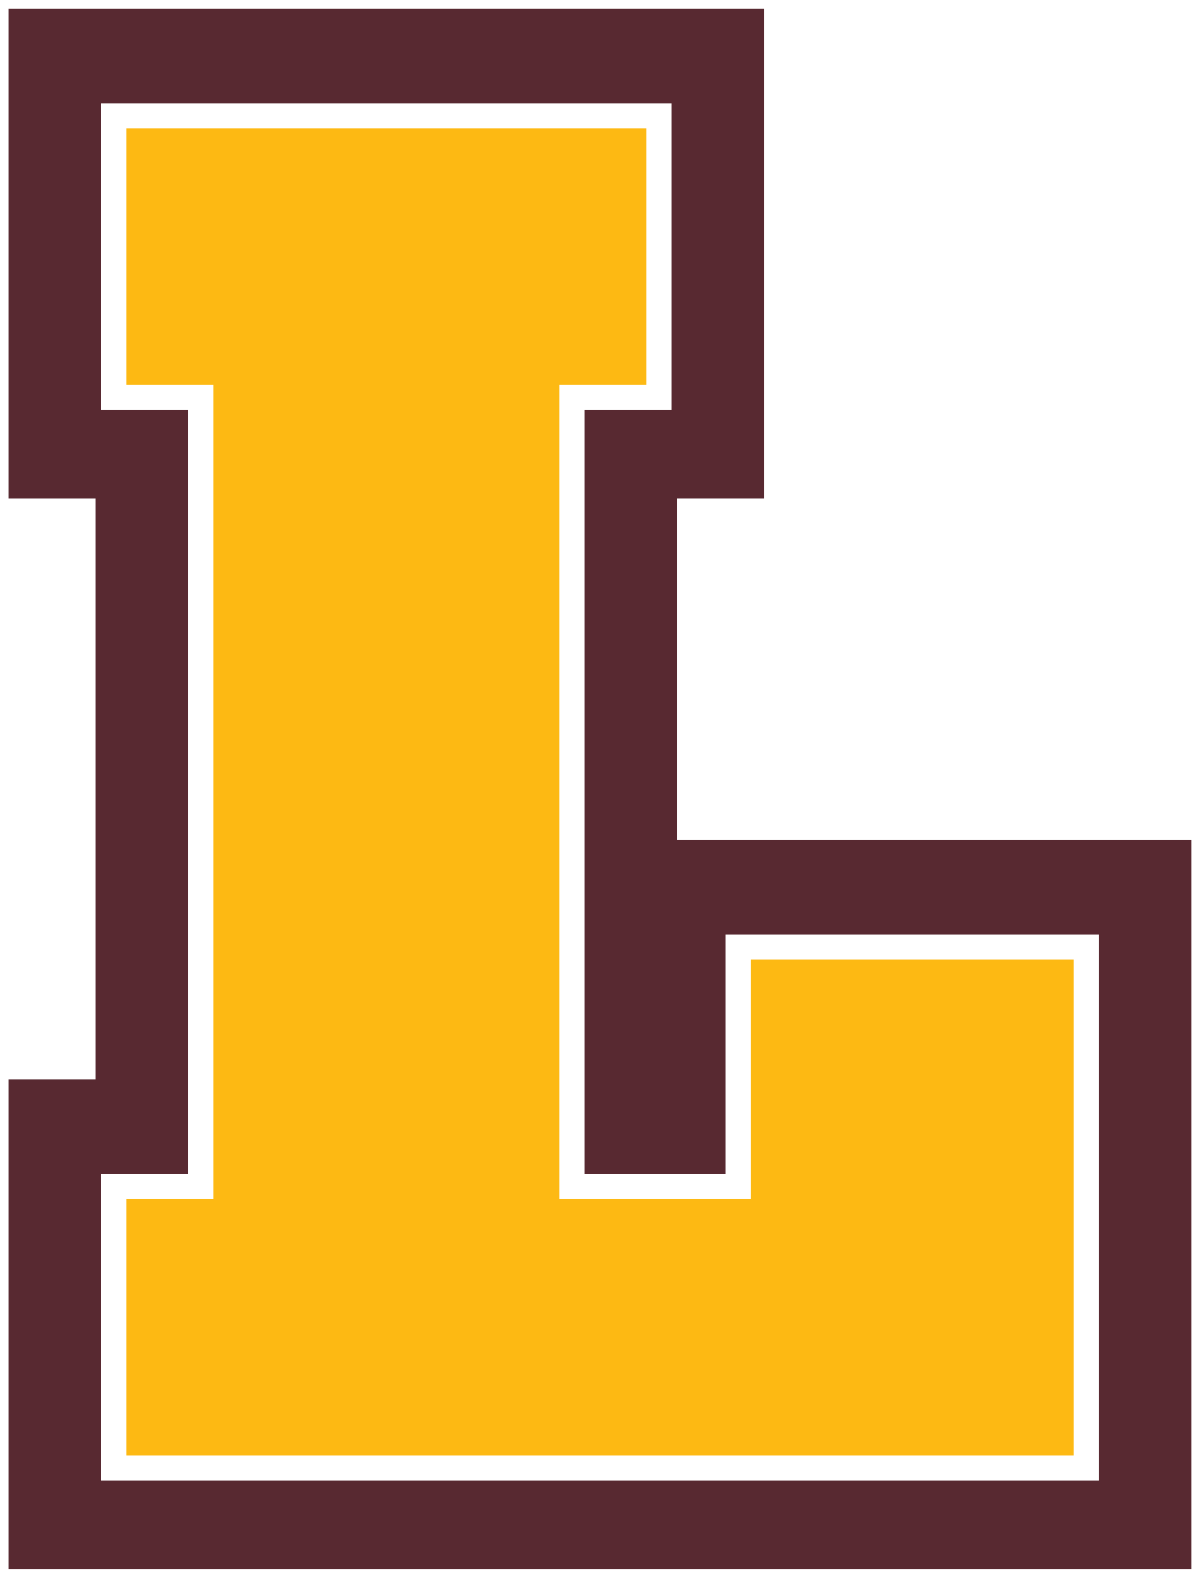 Basketball court clipart creative commons download Loyola Ramblers men's basketball - Wikipedia download